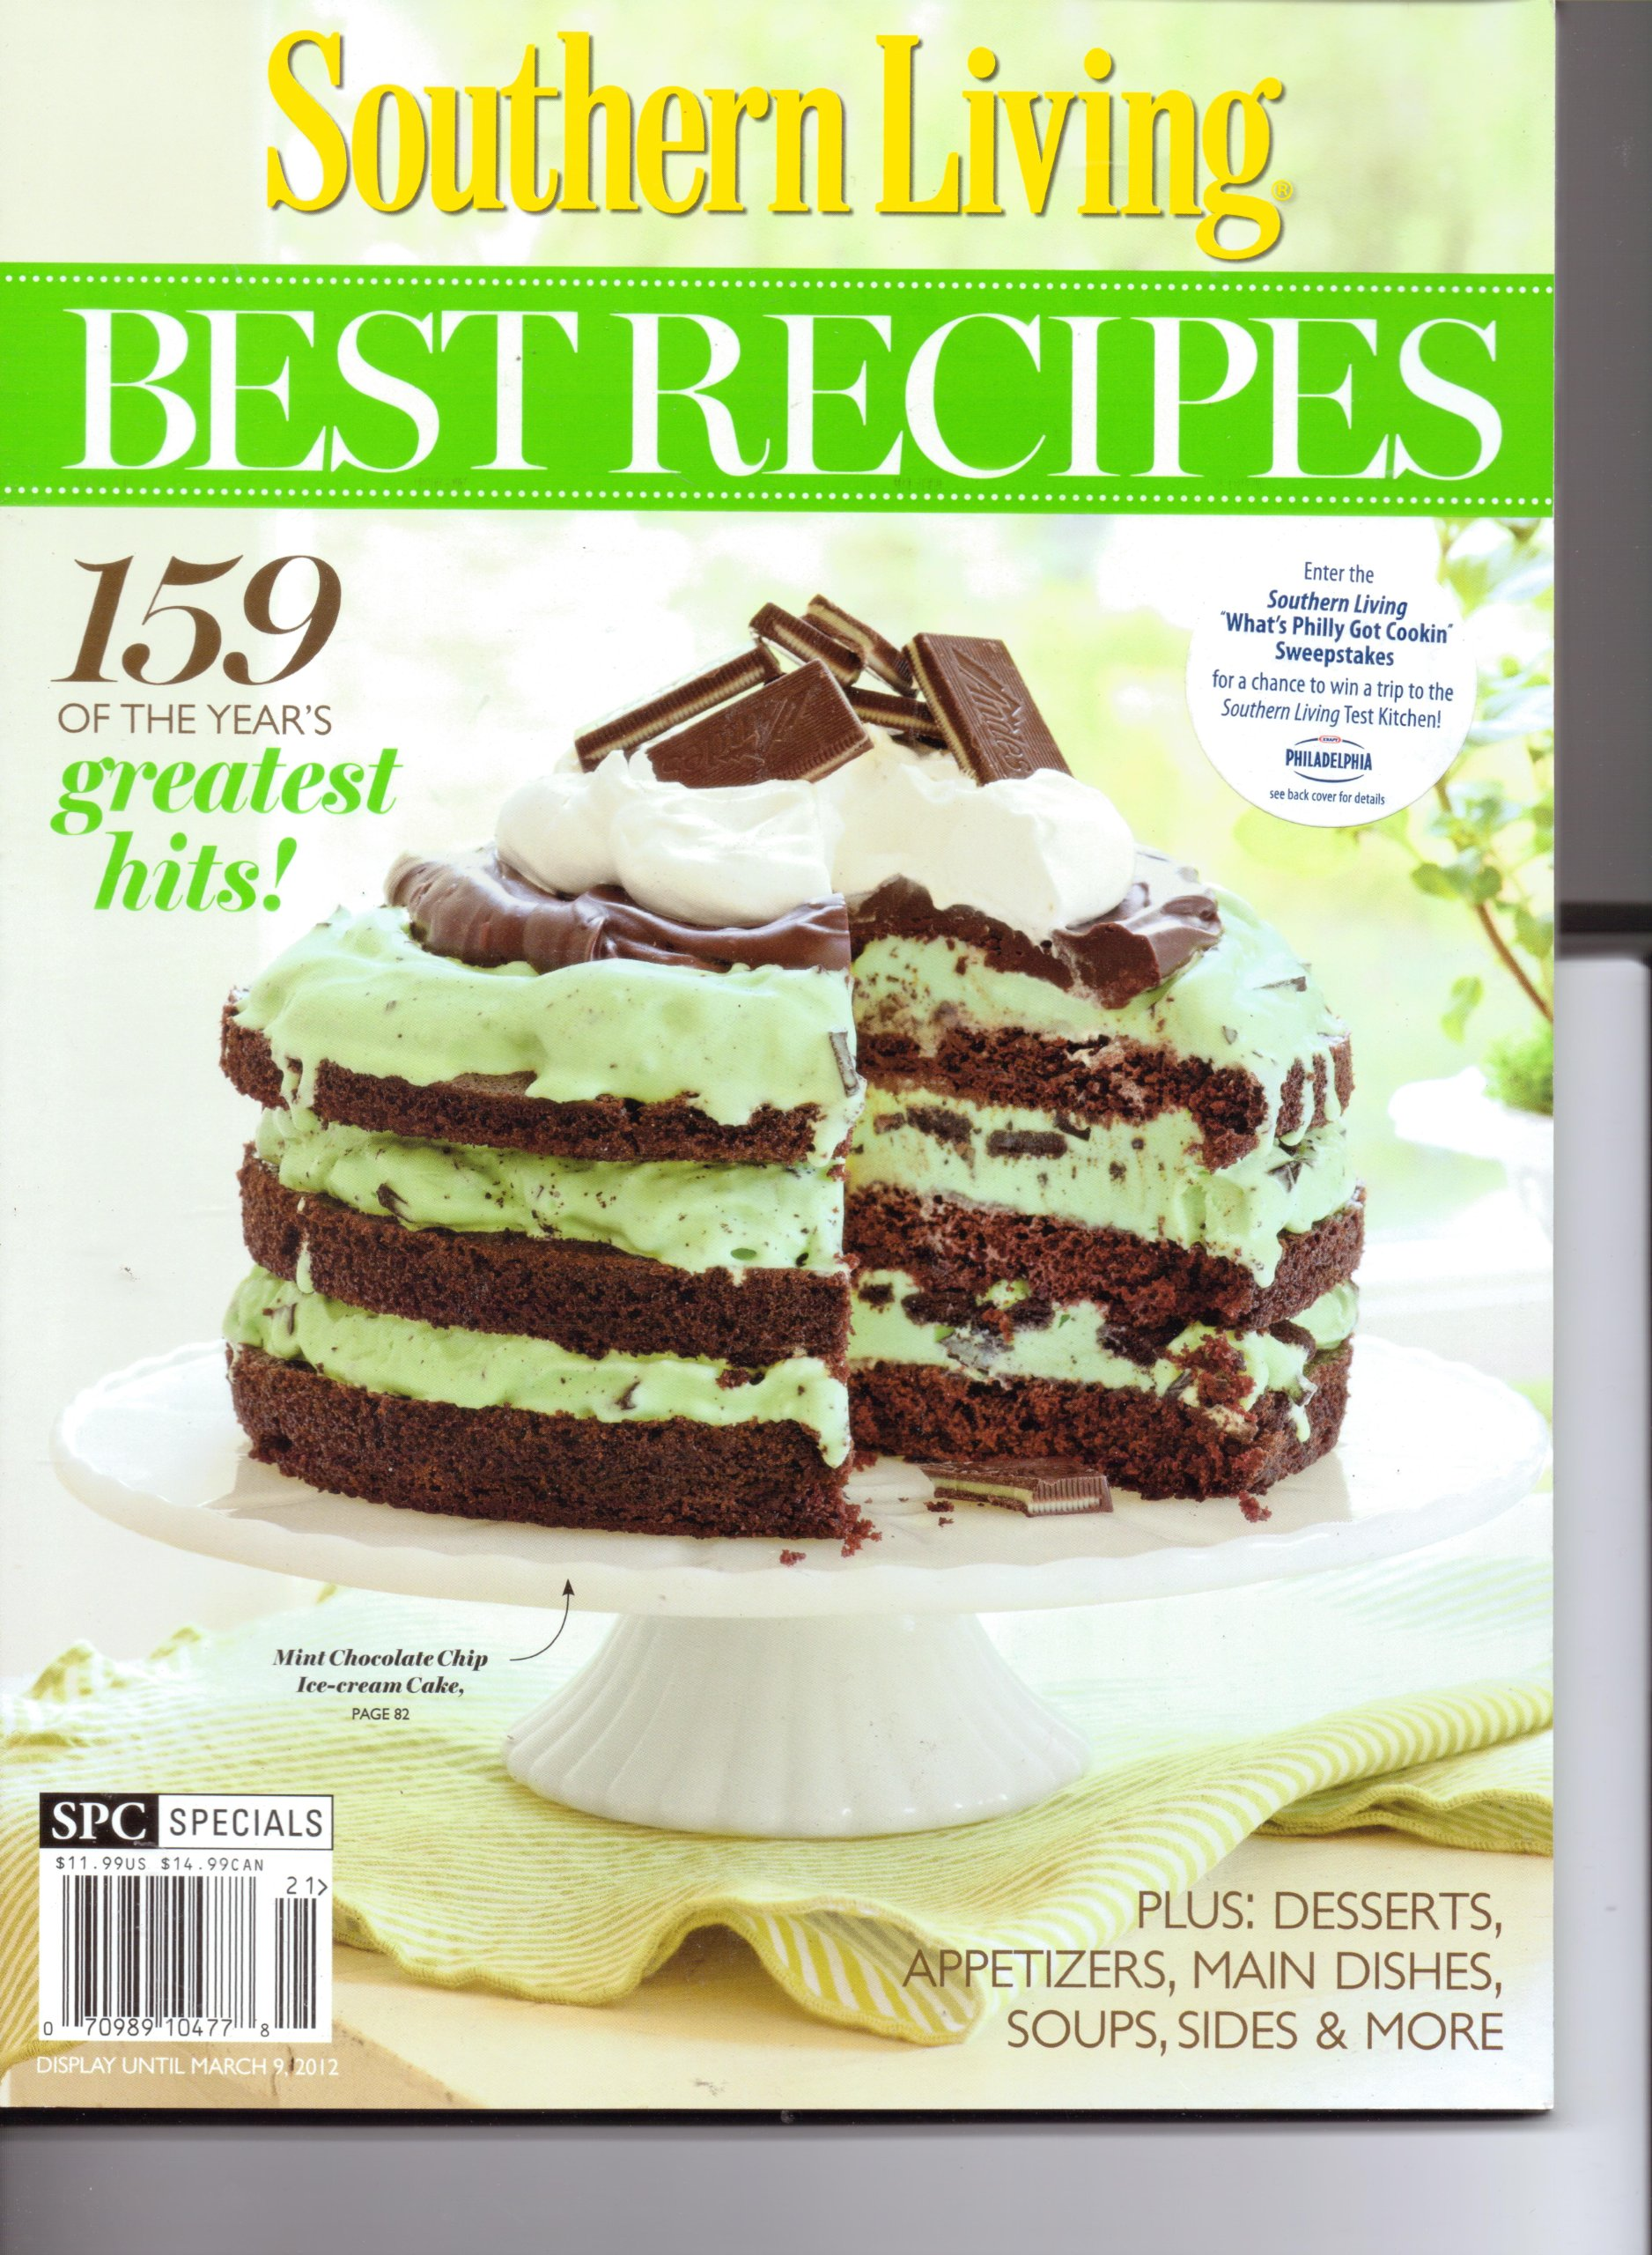 Southern Living BEST RECIPES Magazine  159 Of The Years Greatest